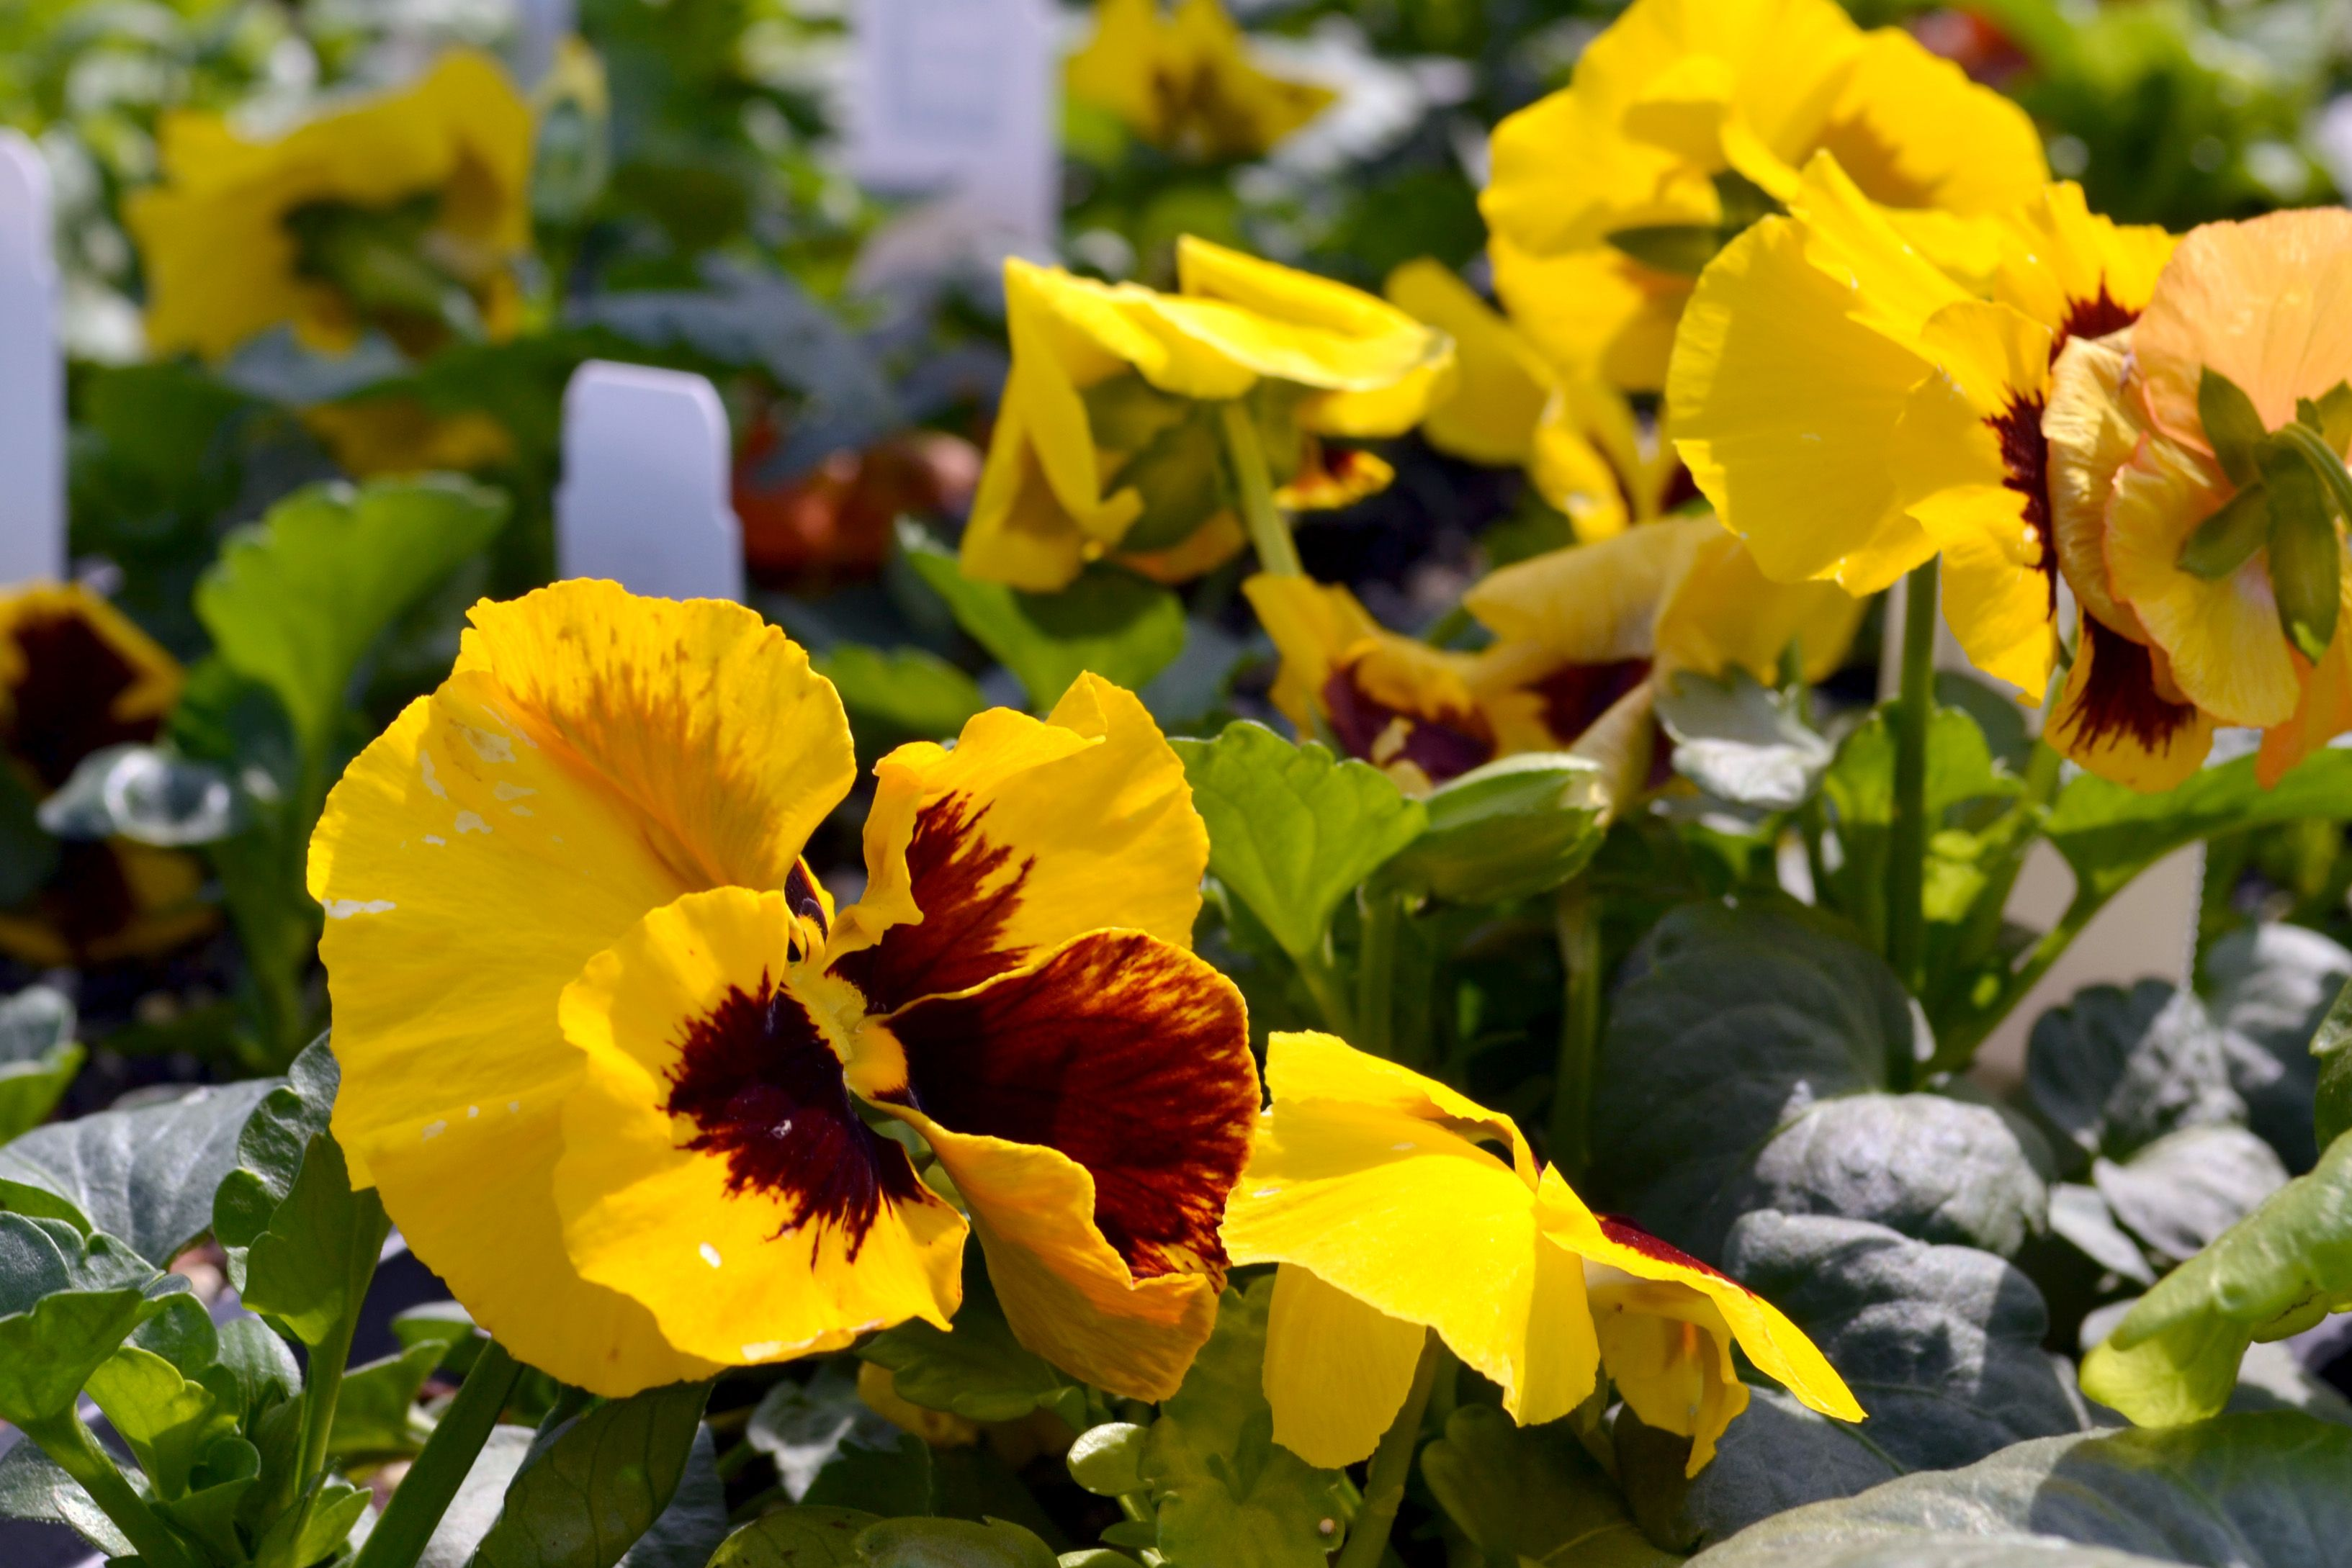 Pansy Need Gardening Advice Colonial Gardens Is Here To Suggest